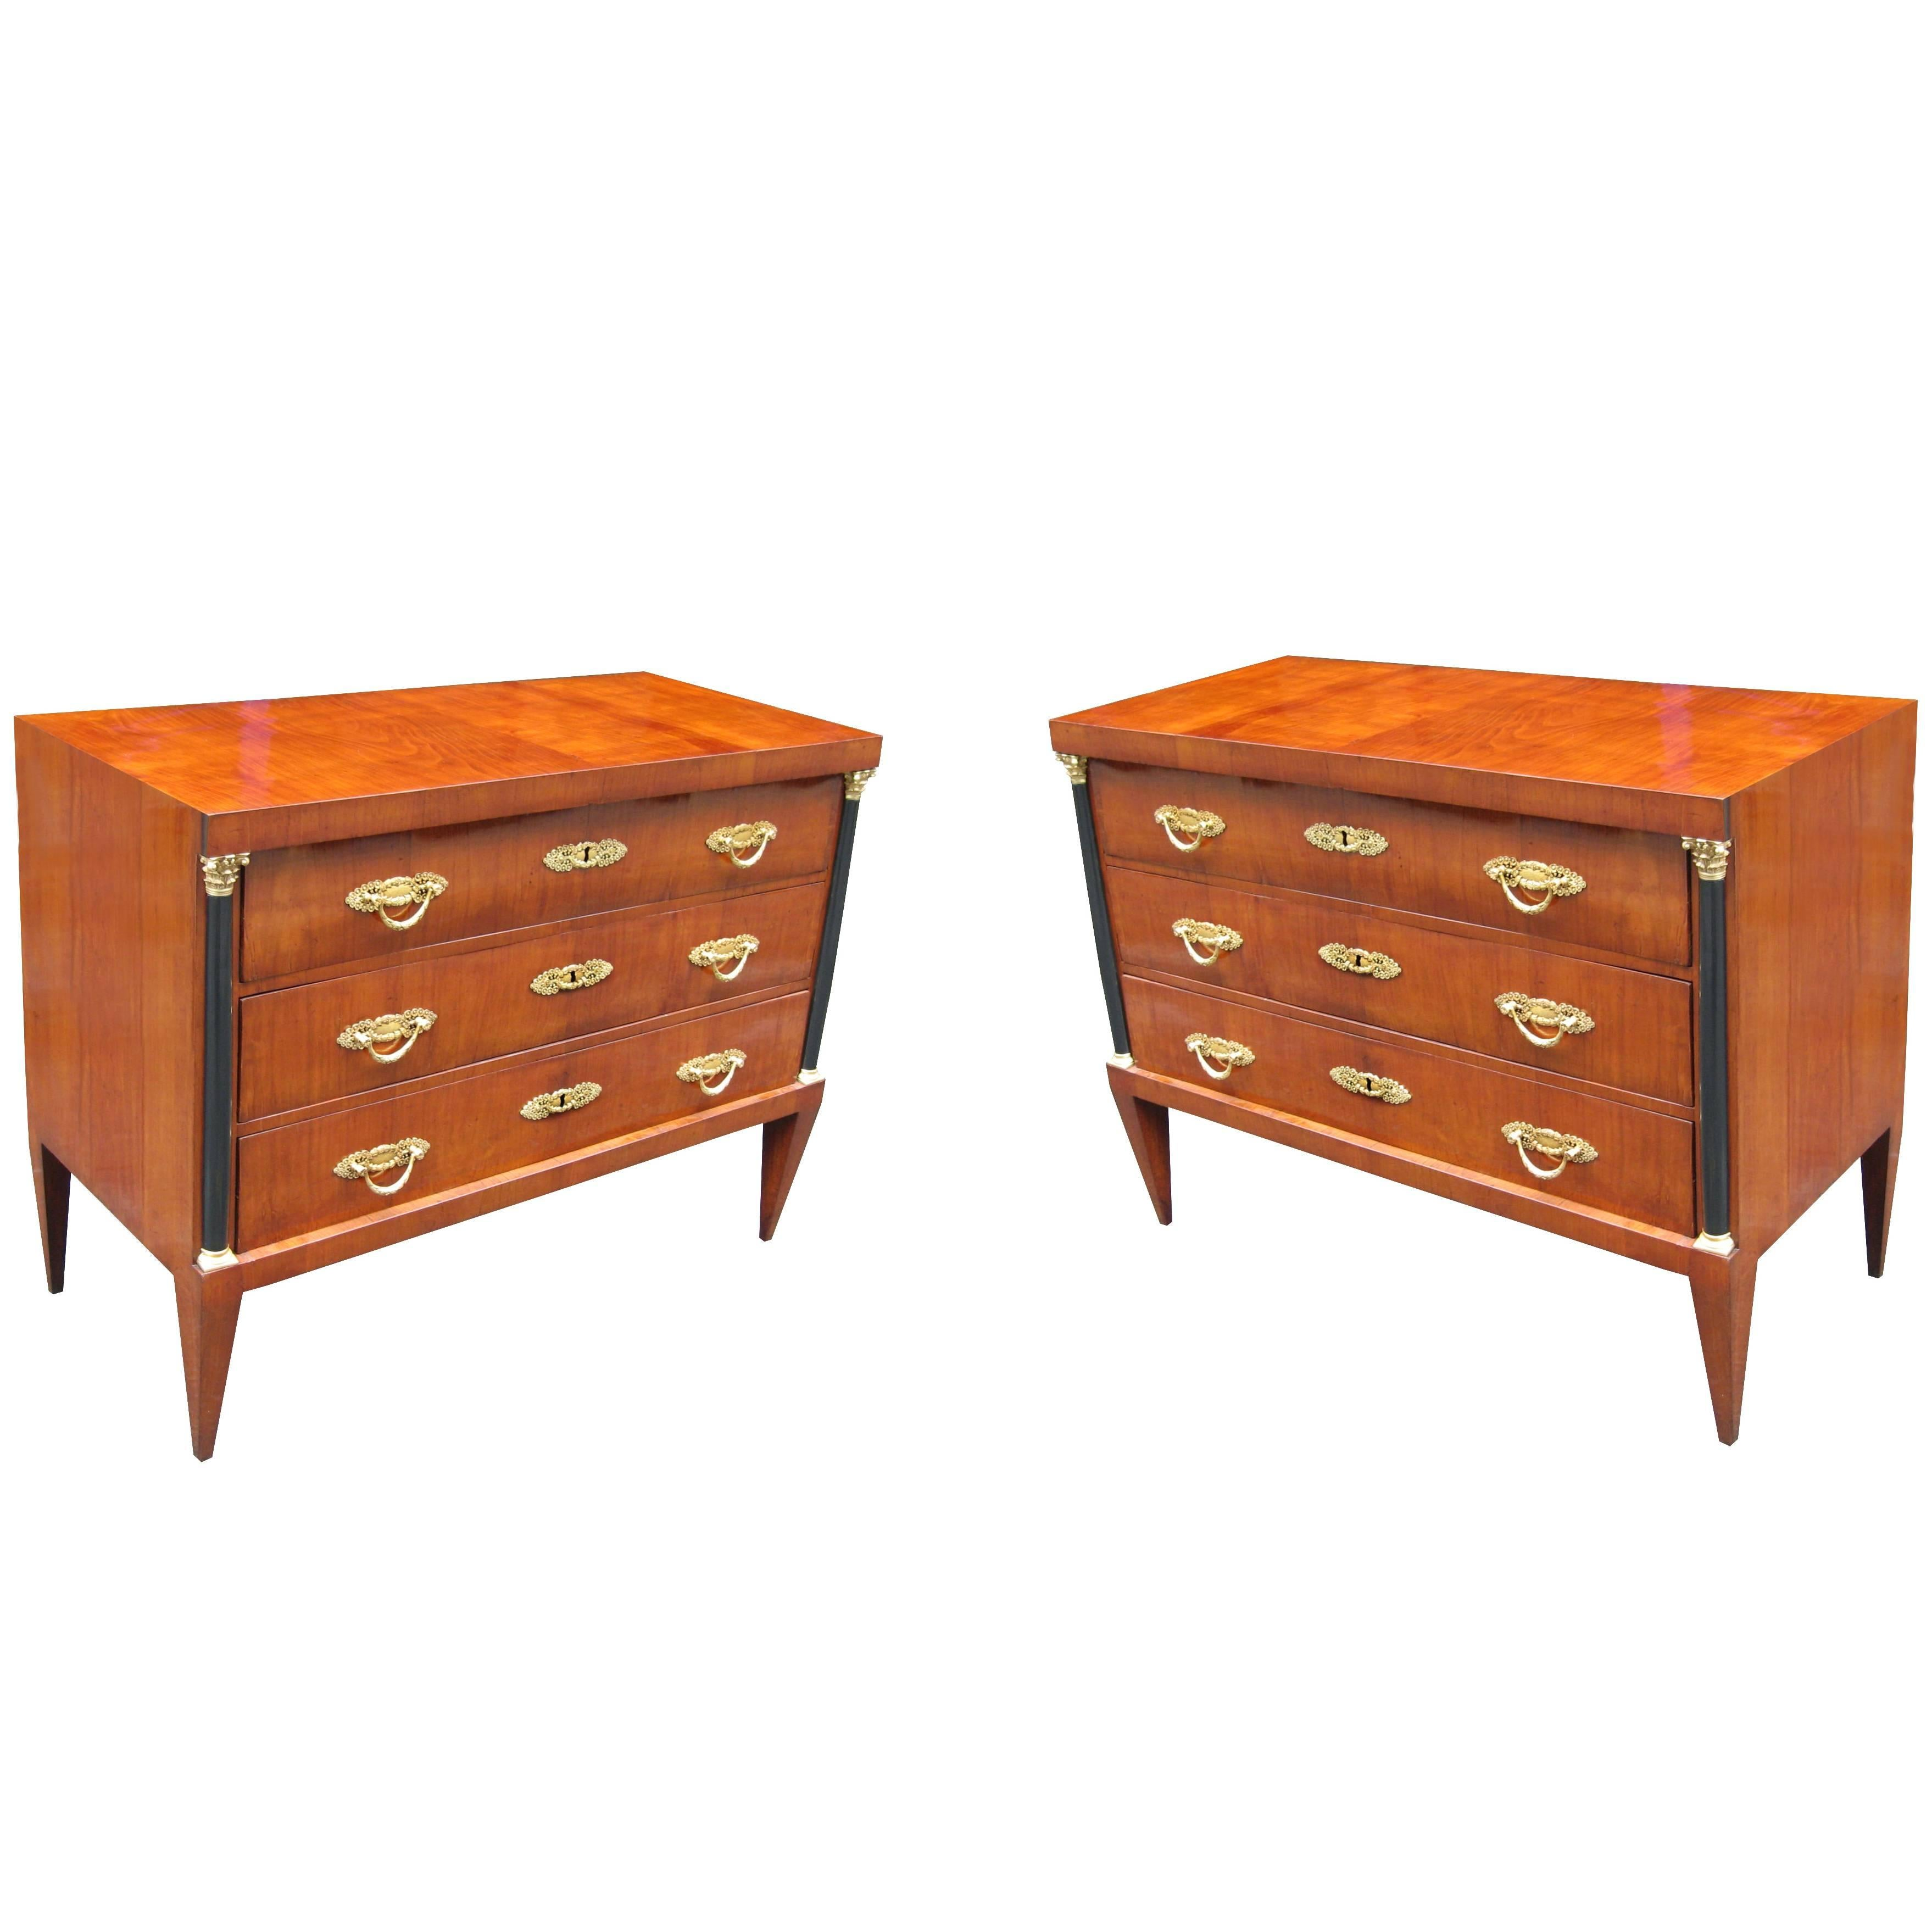 Important Pair of Neoclassical Commodes